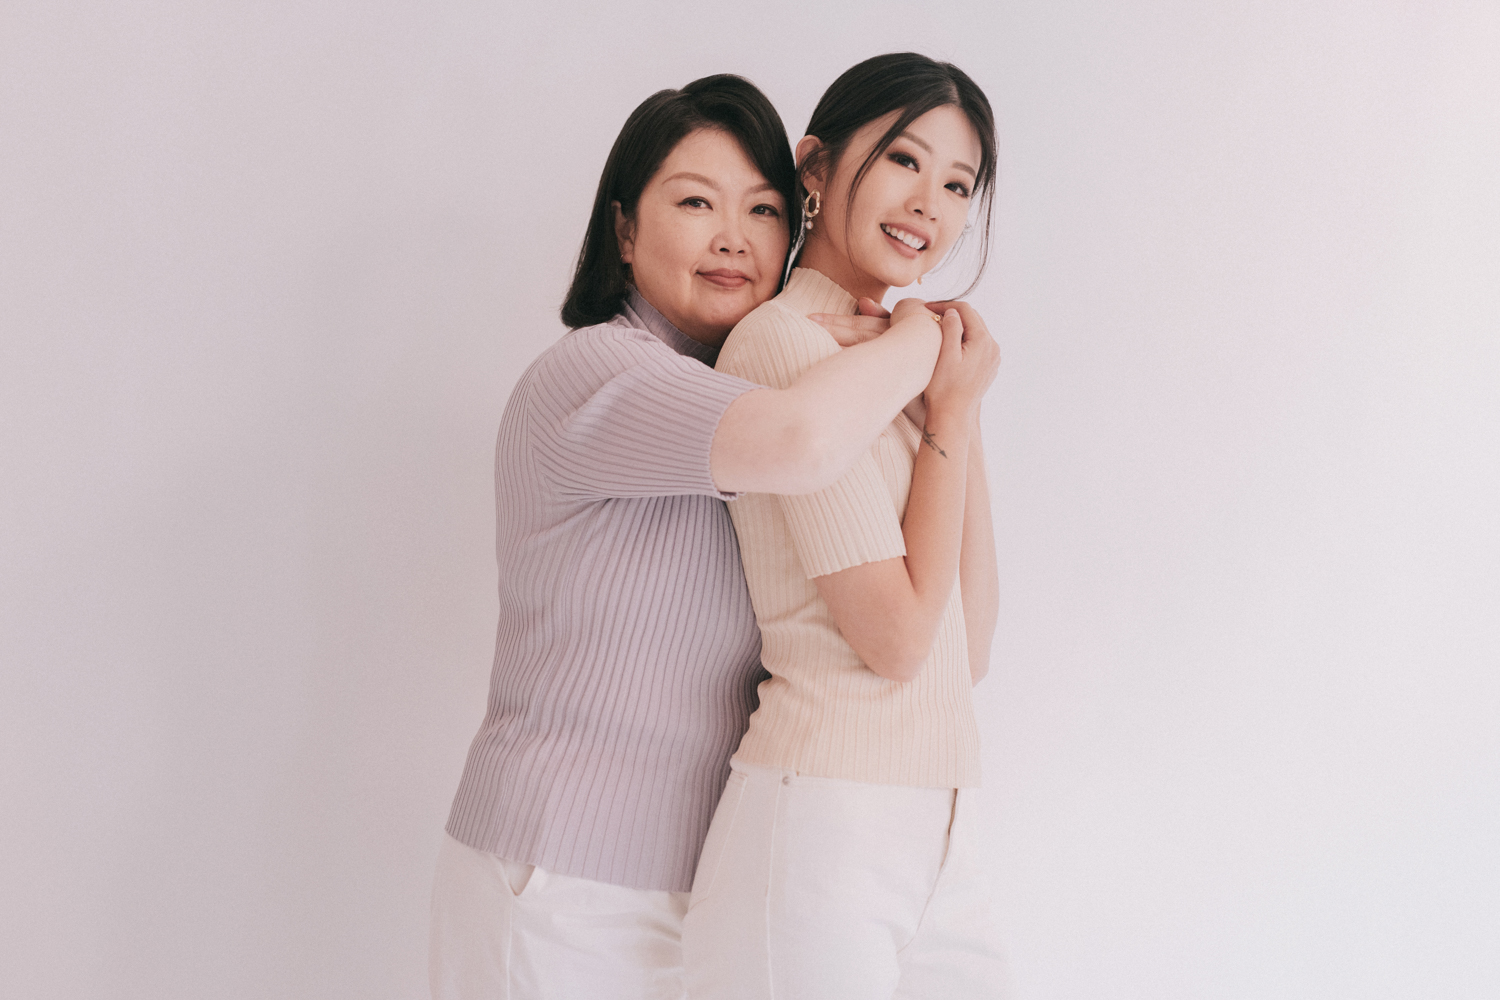 Mother and Daughter Portraits - Emi and Mama Wong